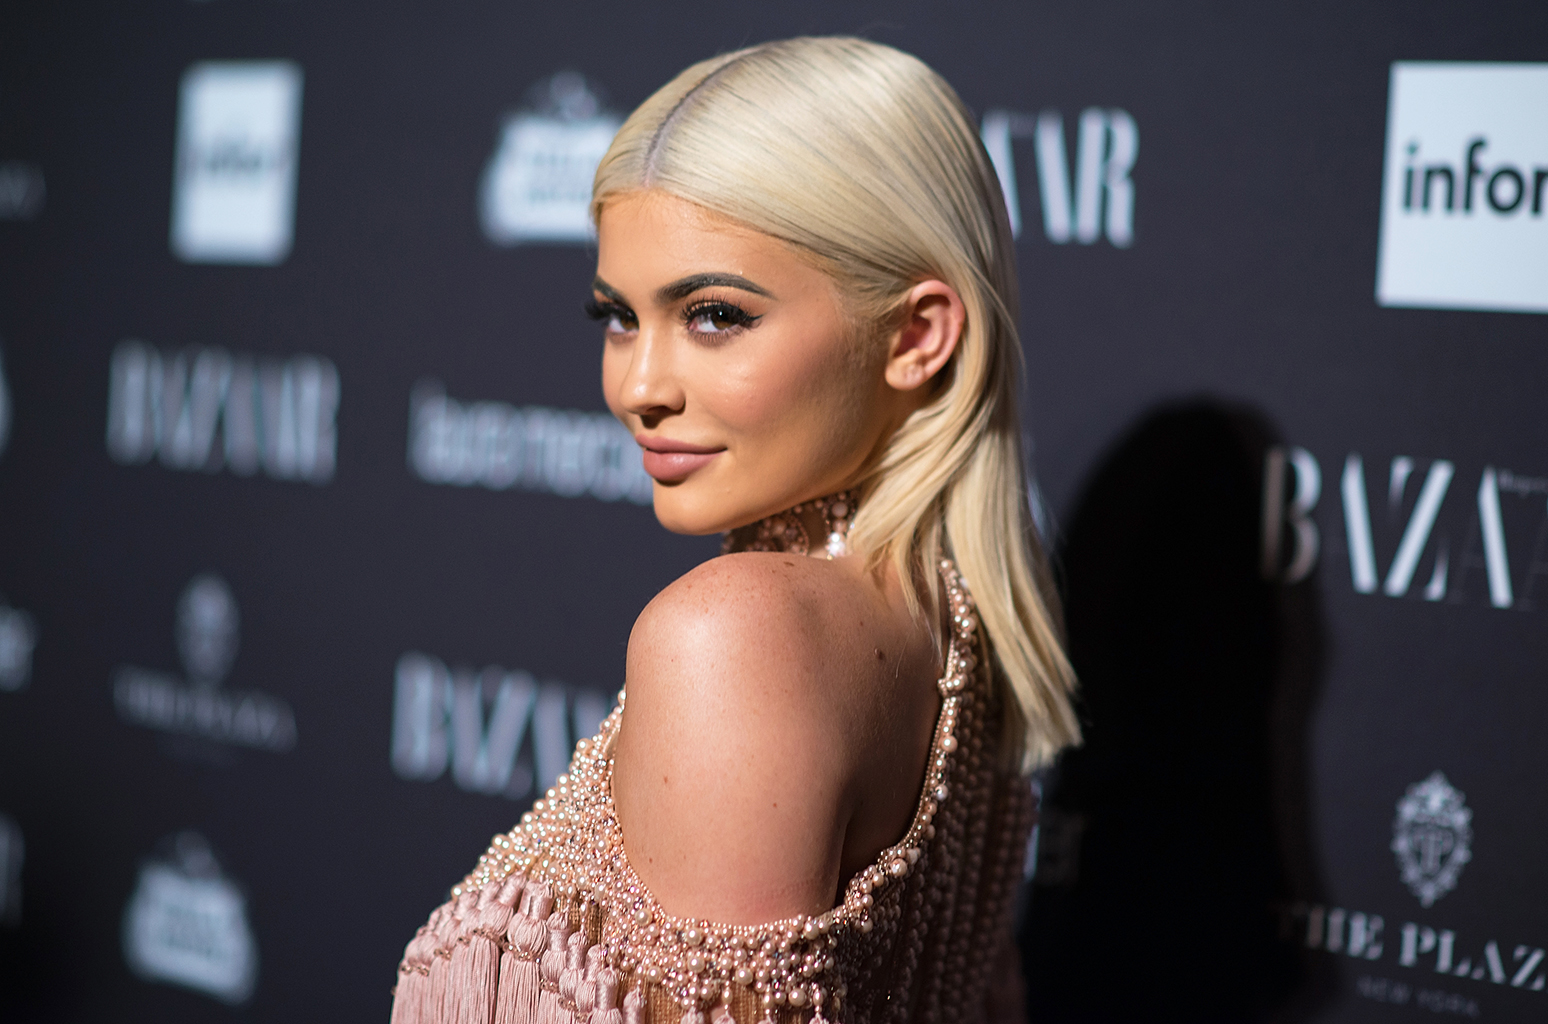 Did Kylie Jenner Have a Baby Shower on the Low?